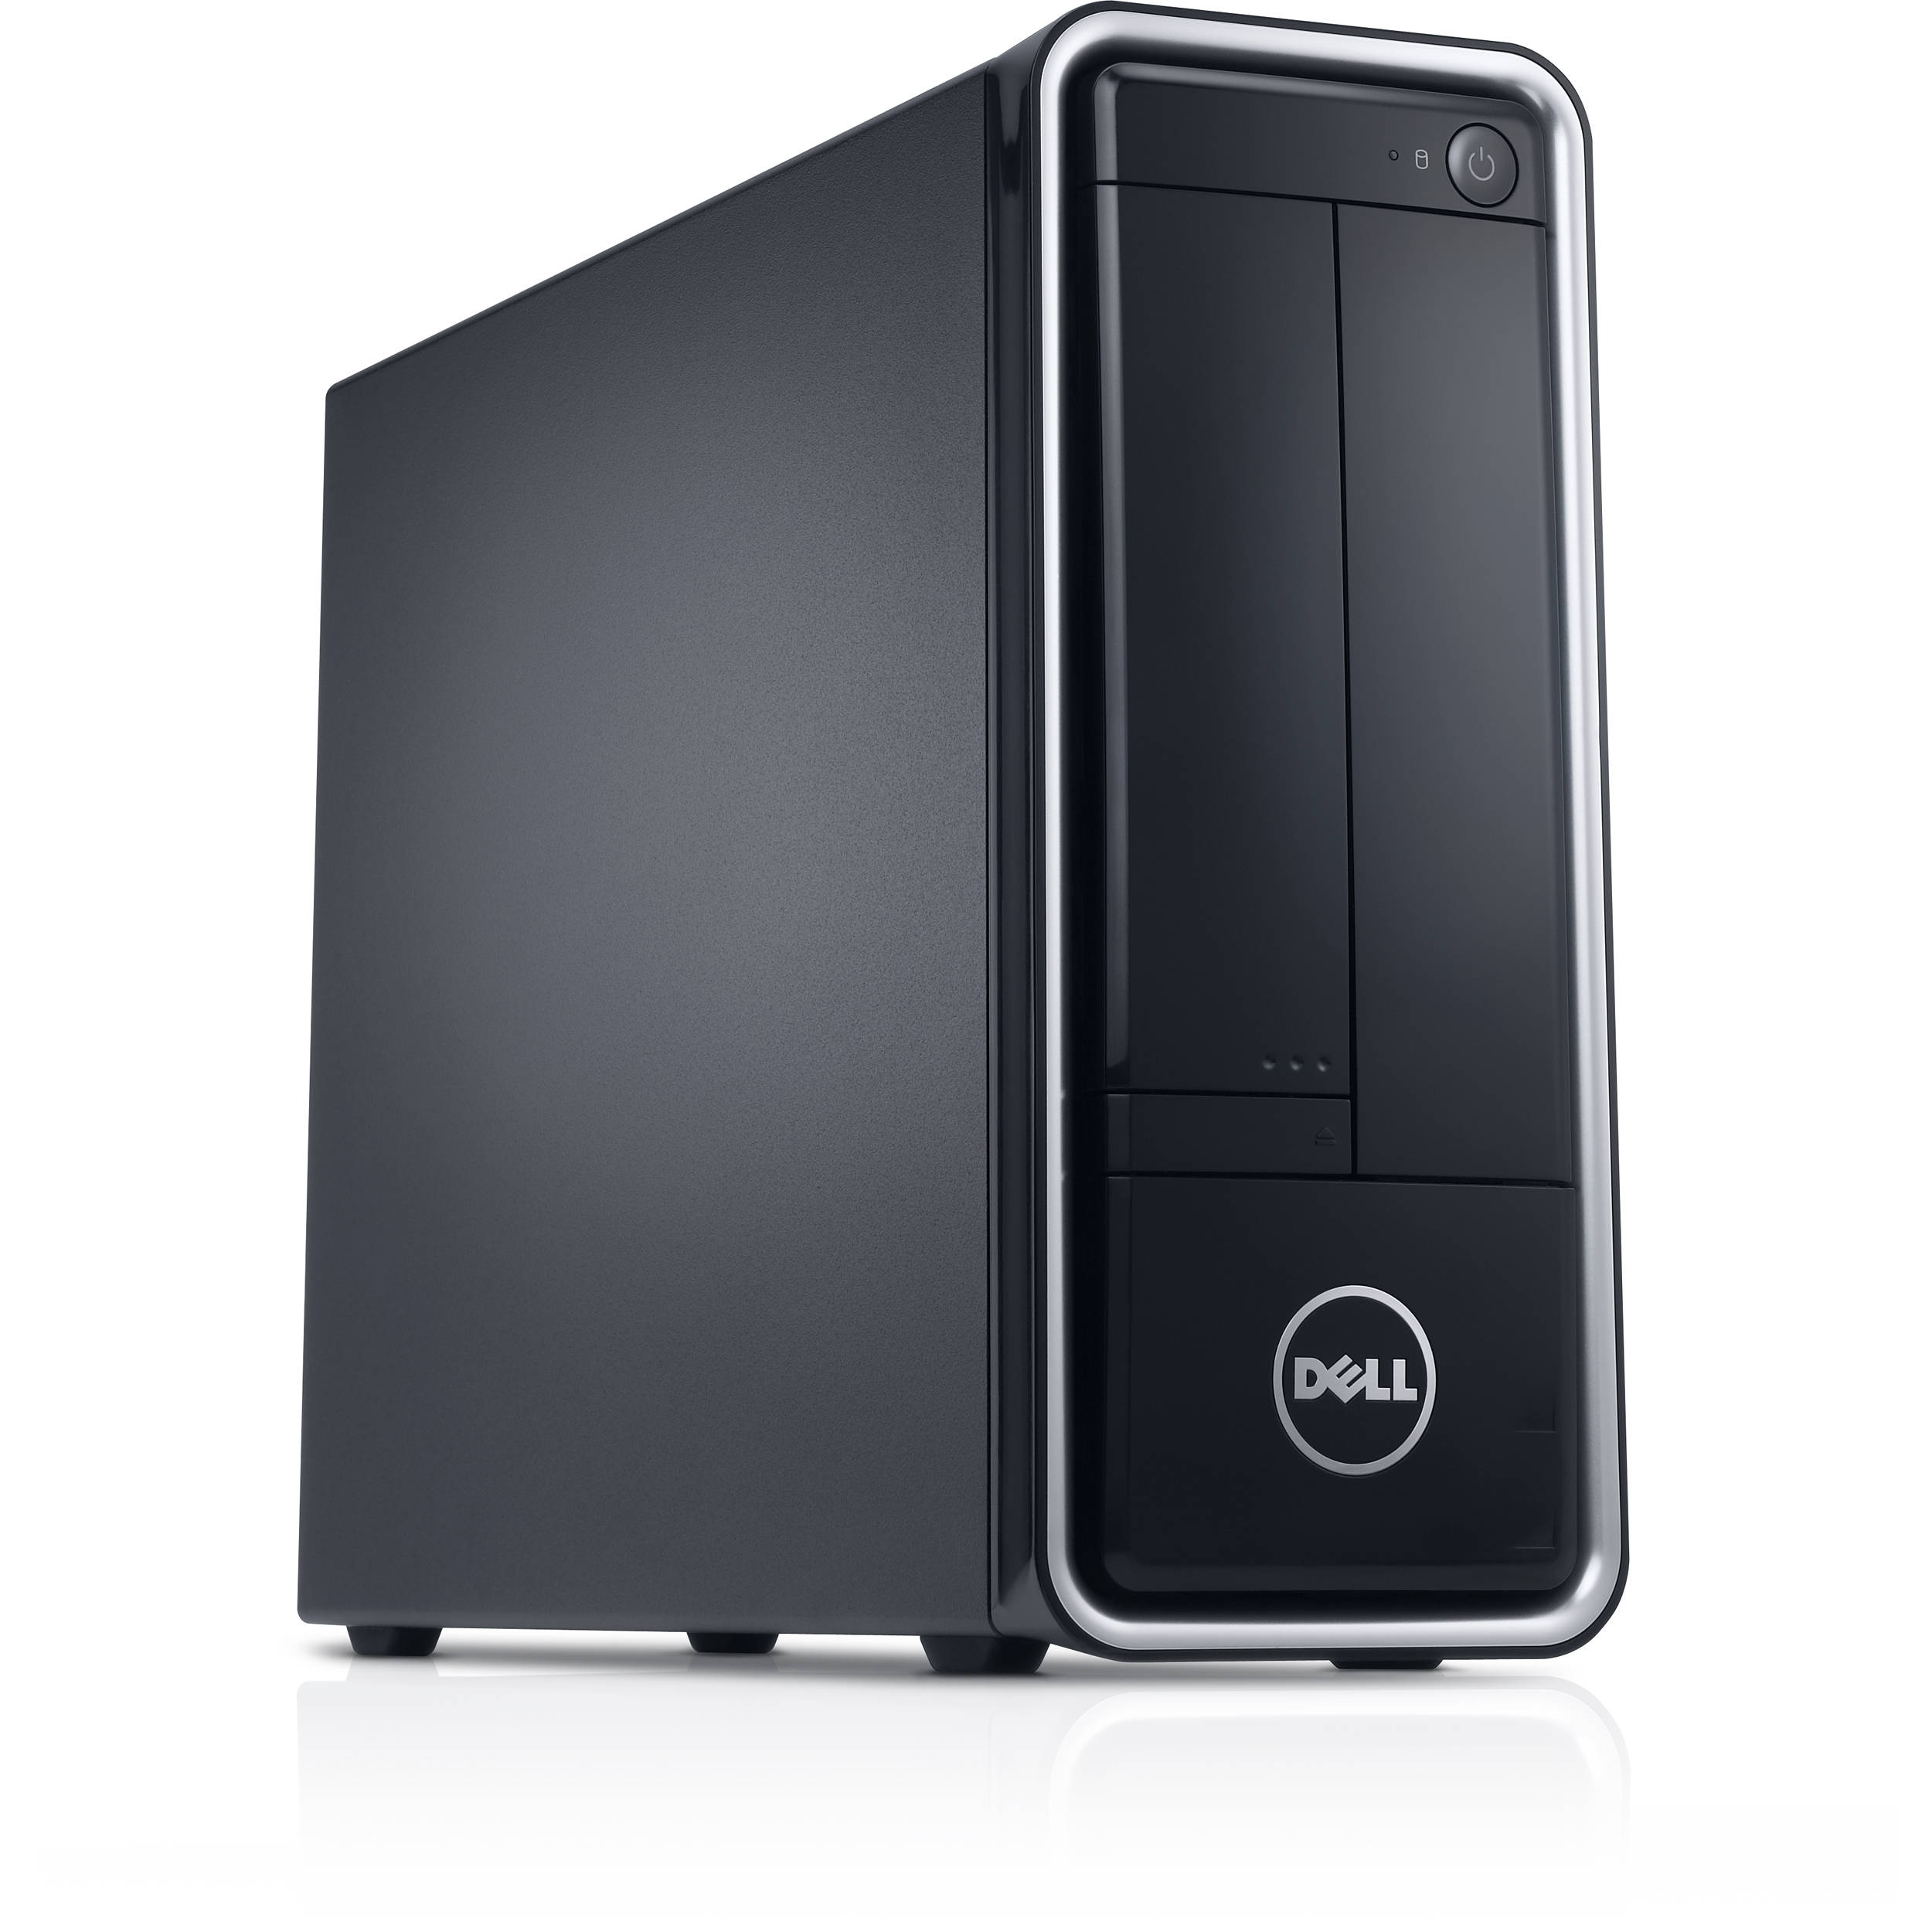 dell inspiron 660s i660s 3848bk desktop computer i660s 3848bk. Black Bedroom Furniture Sets. Home Design Ideas